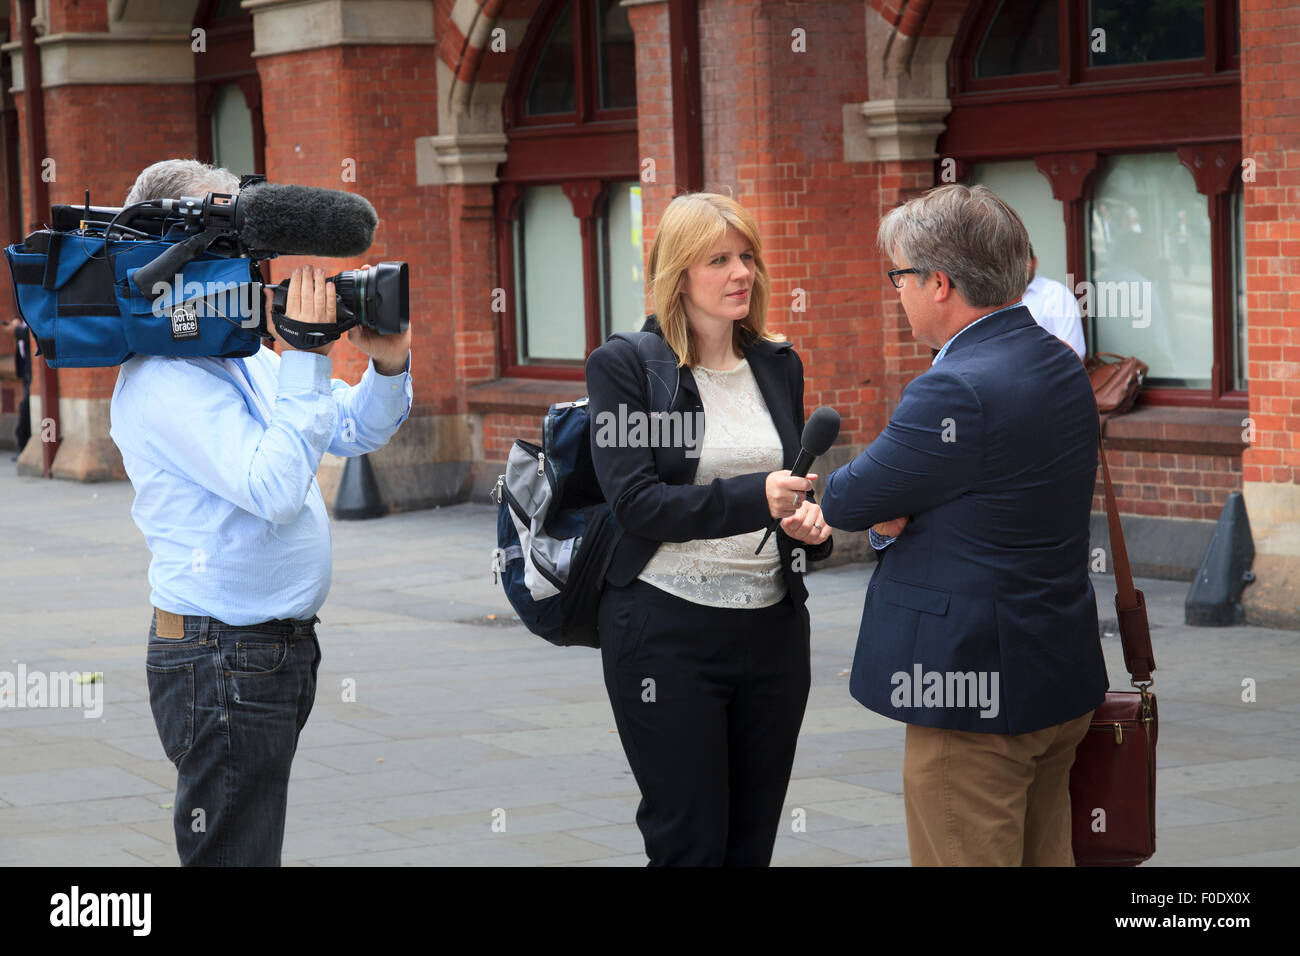 Female reporter and television camera man interview traveler at St Pancras - Stock Image